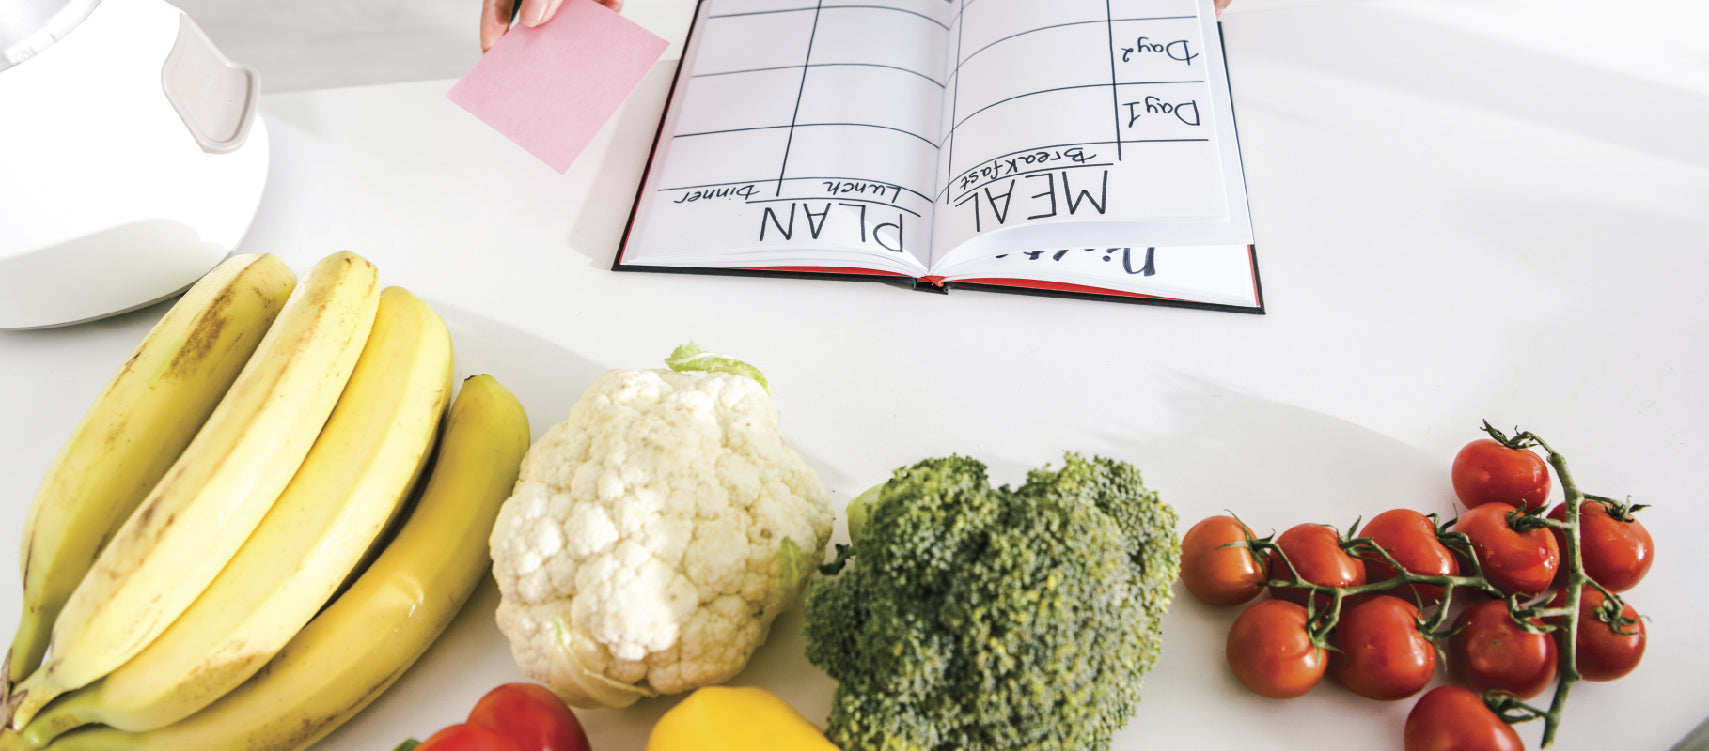 A meal planner with fruits and vegetables on the side